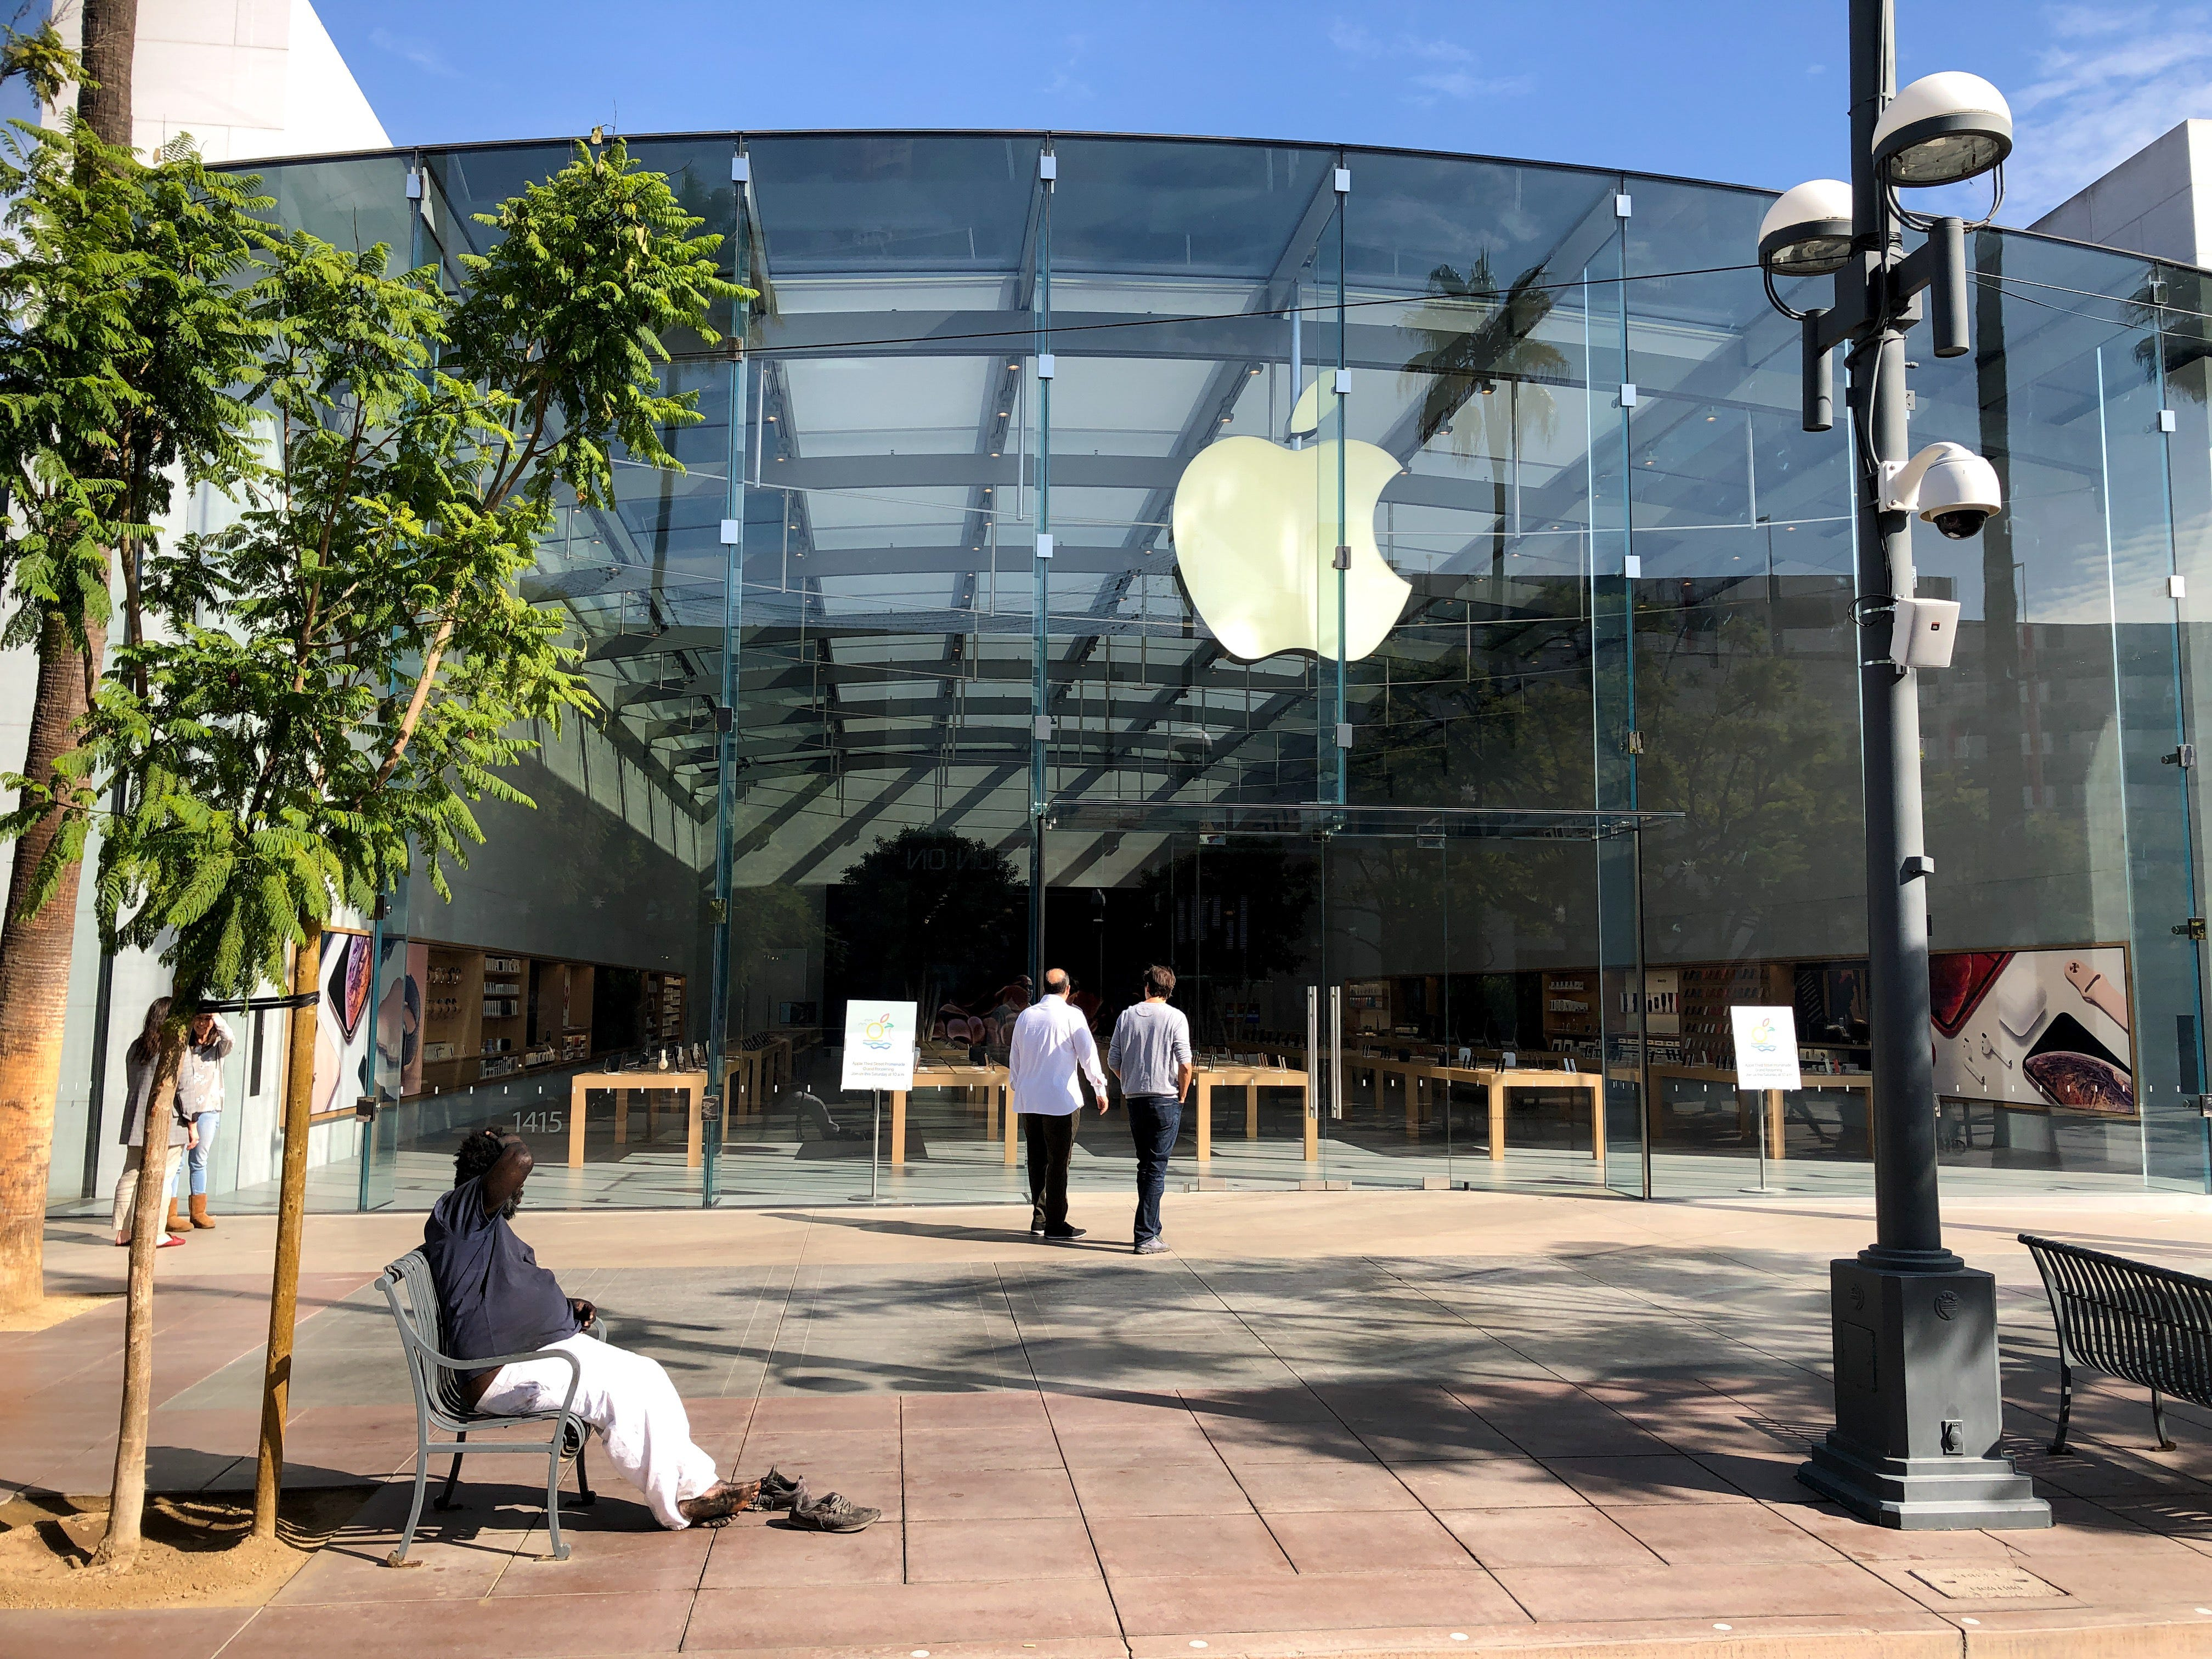 Apple is 1/3 of the way through major remake of retail stores